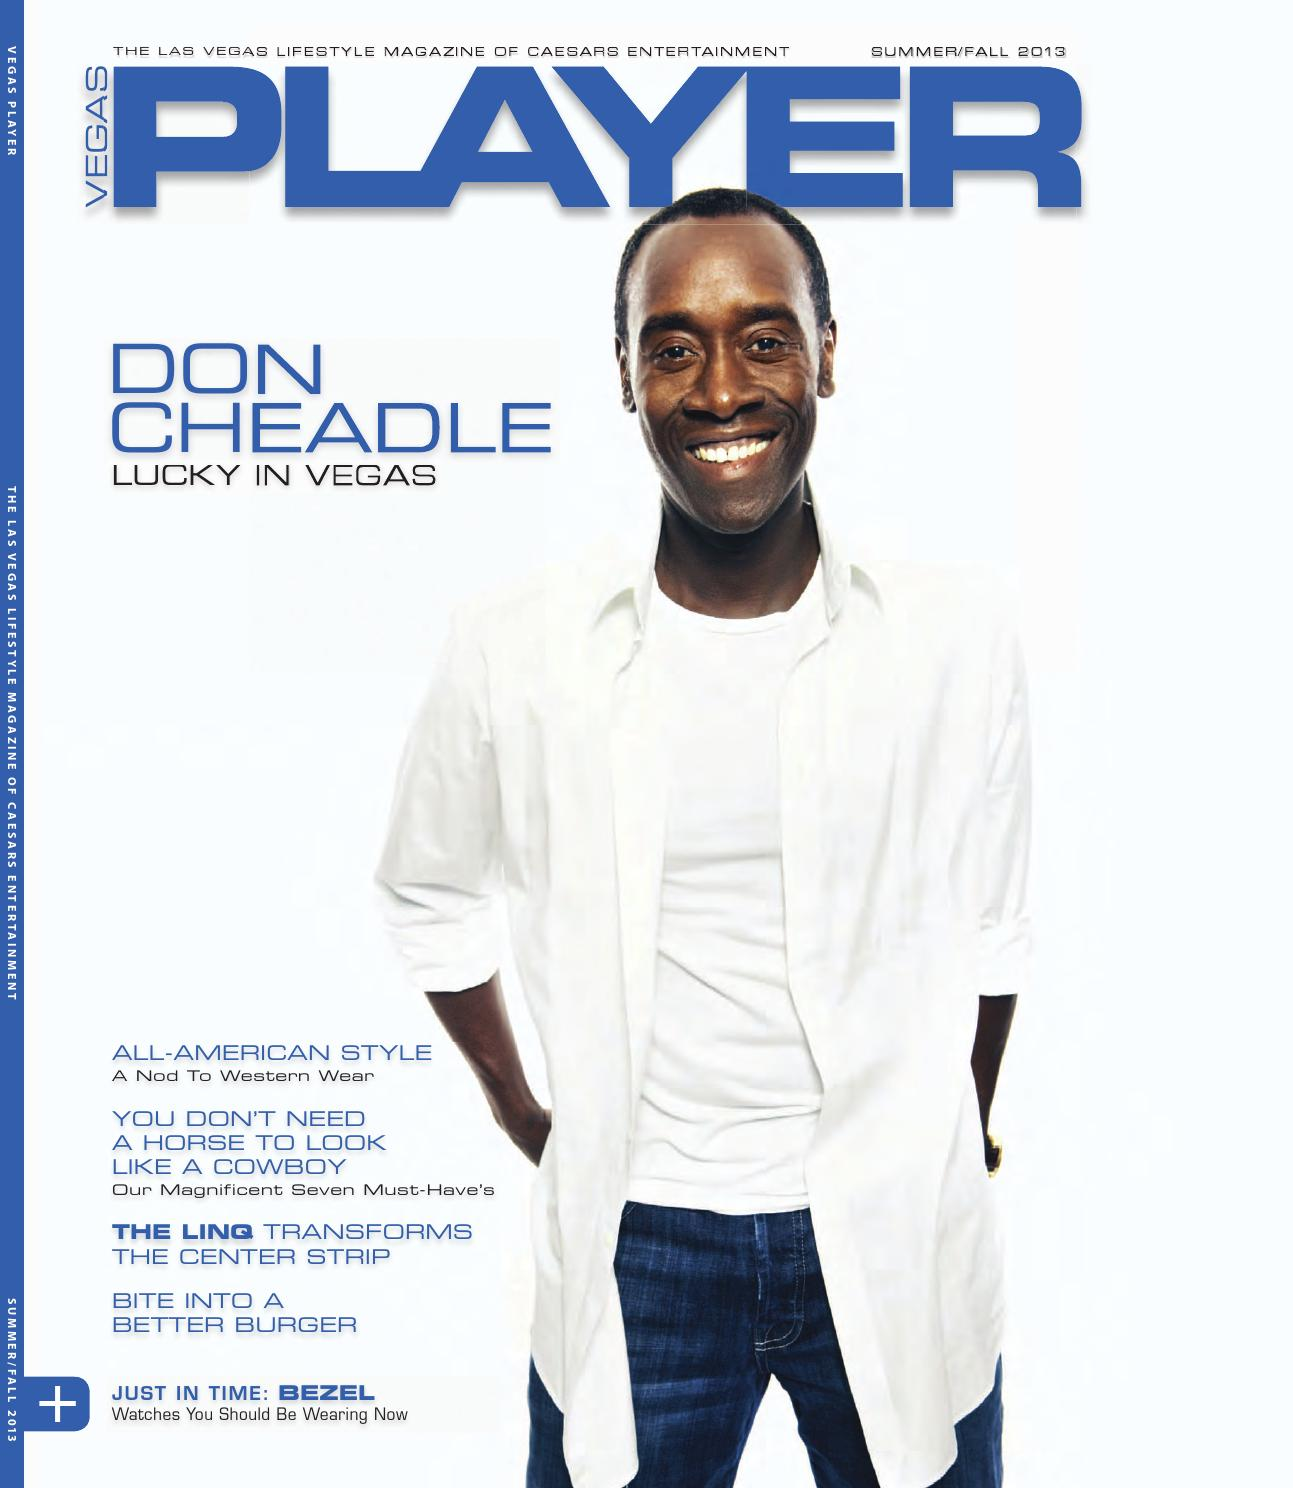 bbad8c203b9 Vegas Player Magazine - Summer   Fall 2013 by Onboard Media - issuu